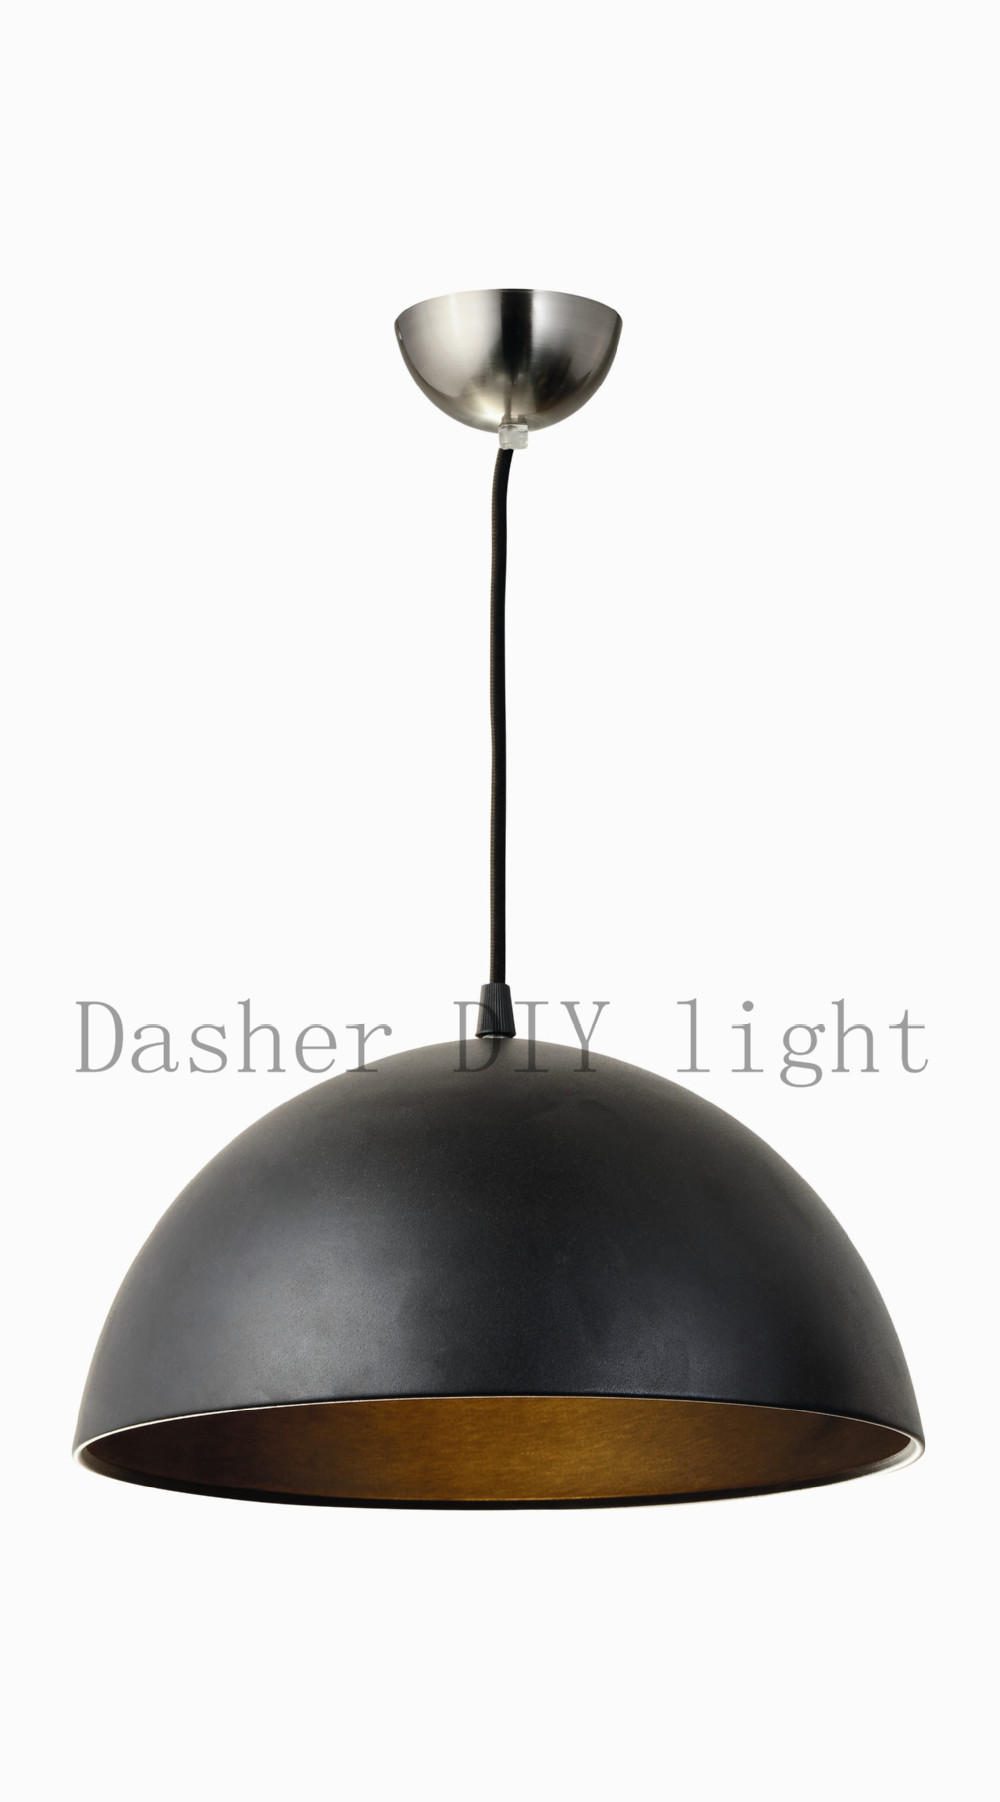 decorative vintage industrial hanging lamp black or brass color